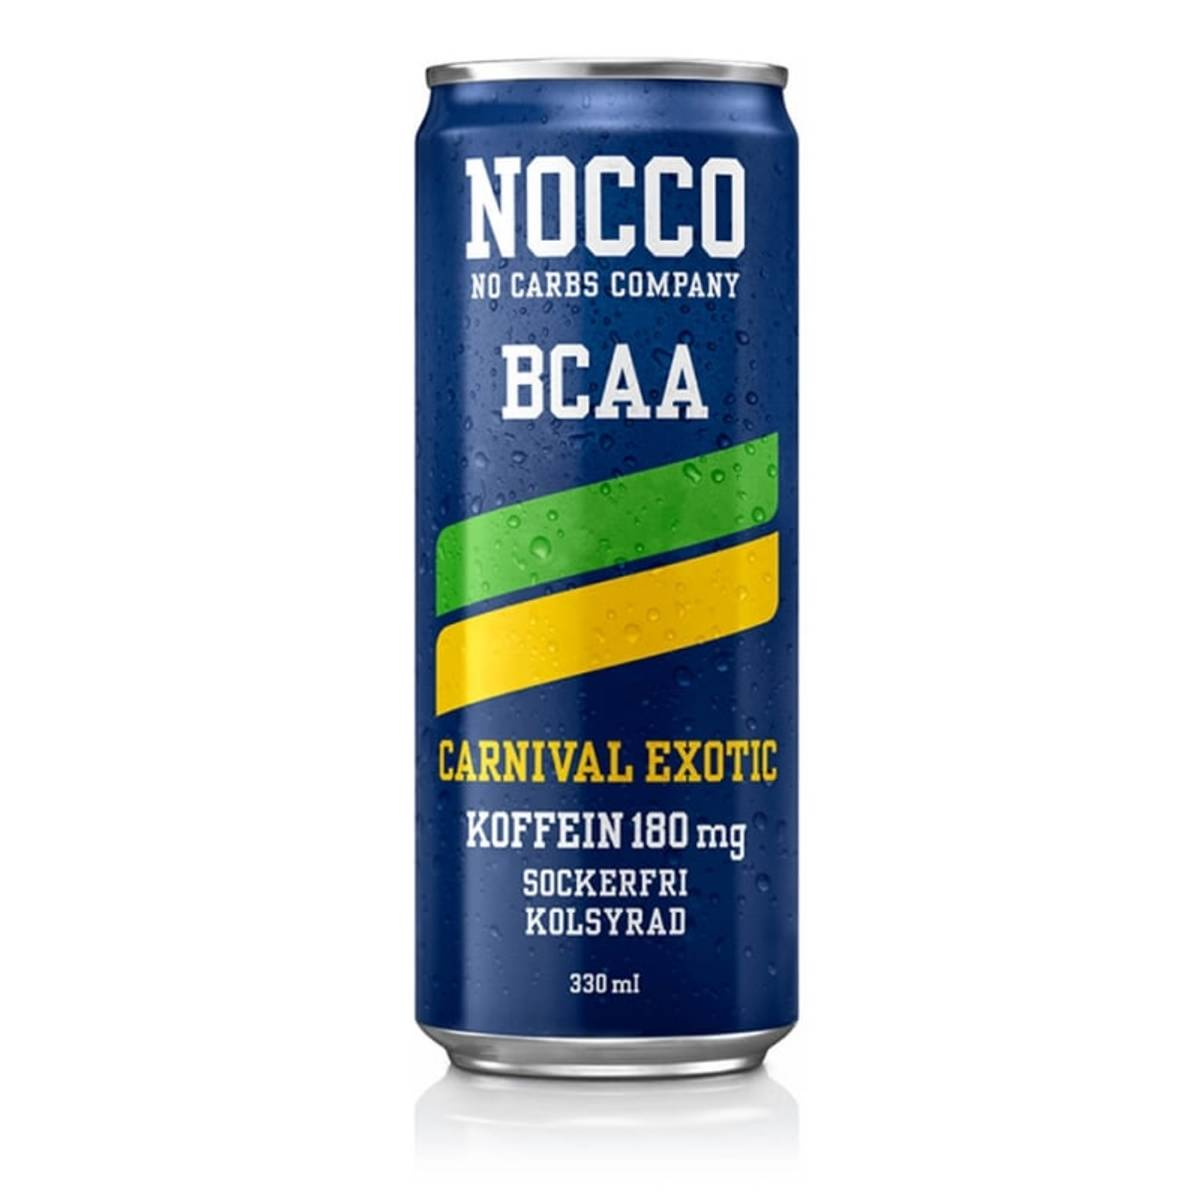 Nocco BCAA - Carnival Exotic 330ml